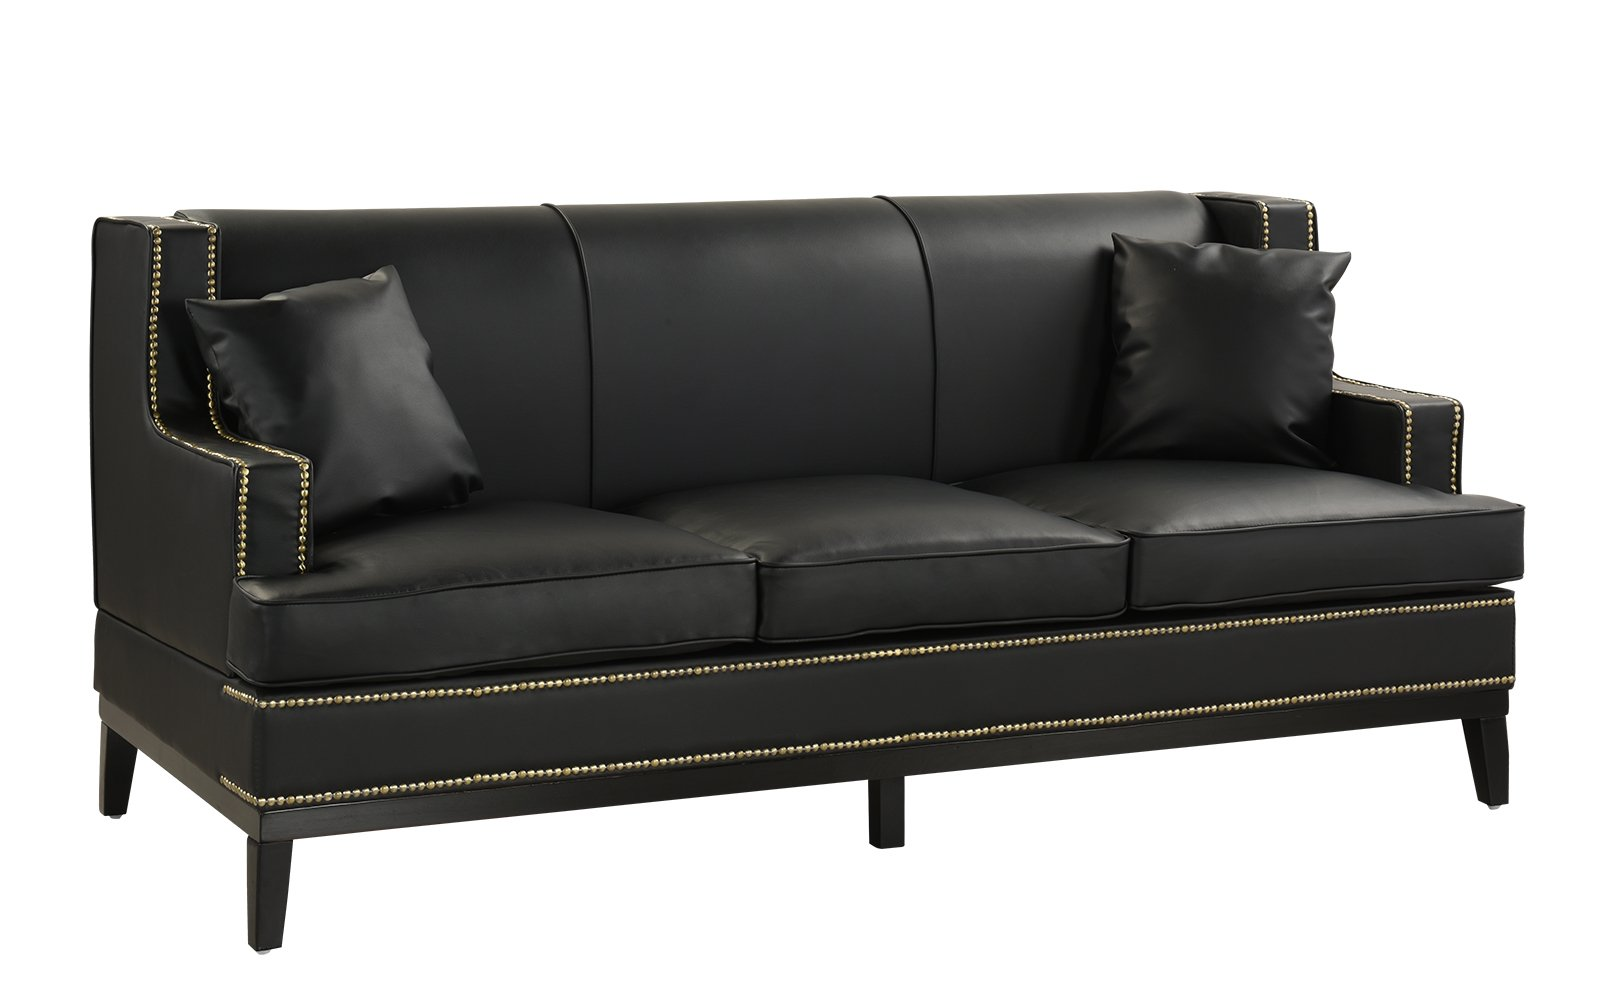 Details About Black Modern Bonded Leather Sofa With Nailhead Trim Detail, 2  Accent Pillows